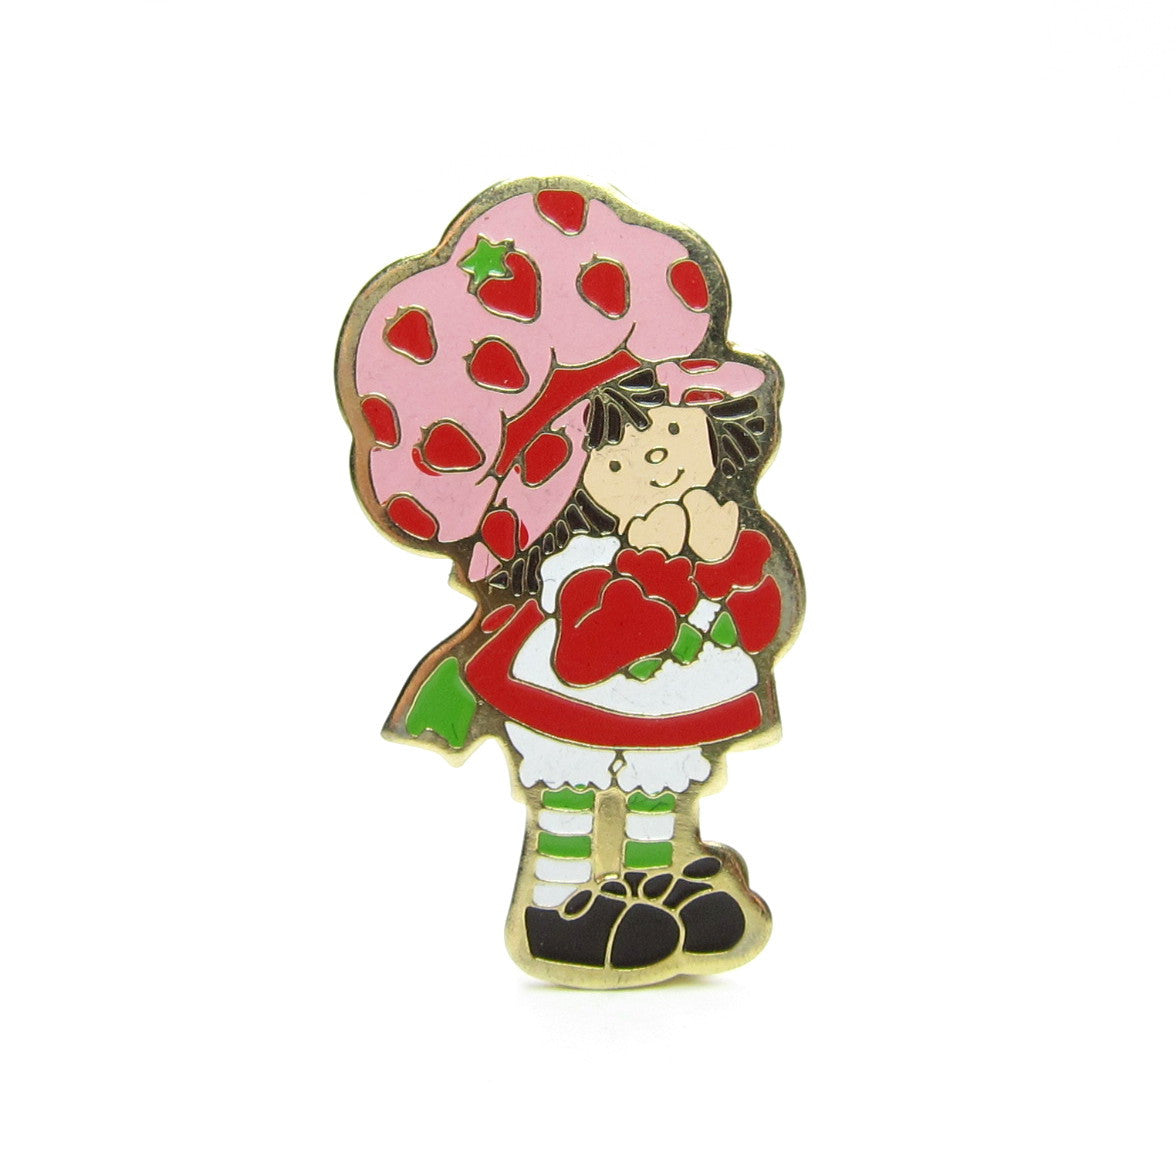 Strawberry Shortcake pin brooch